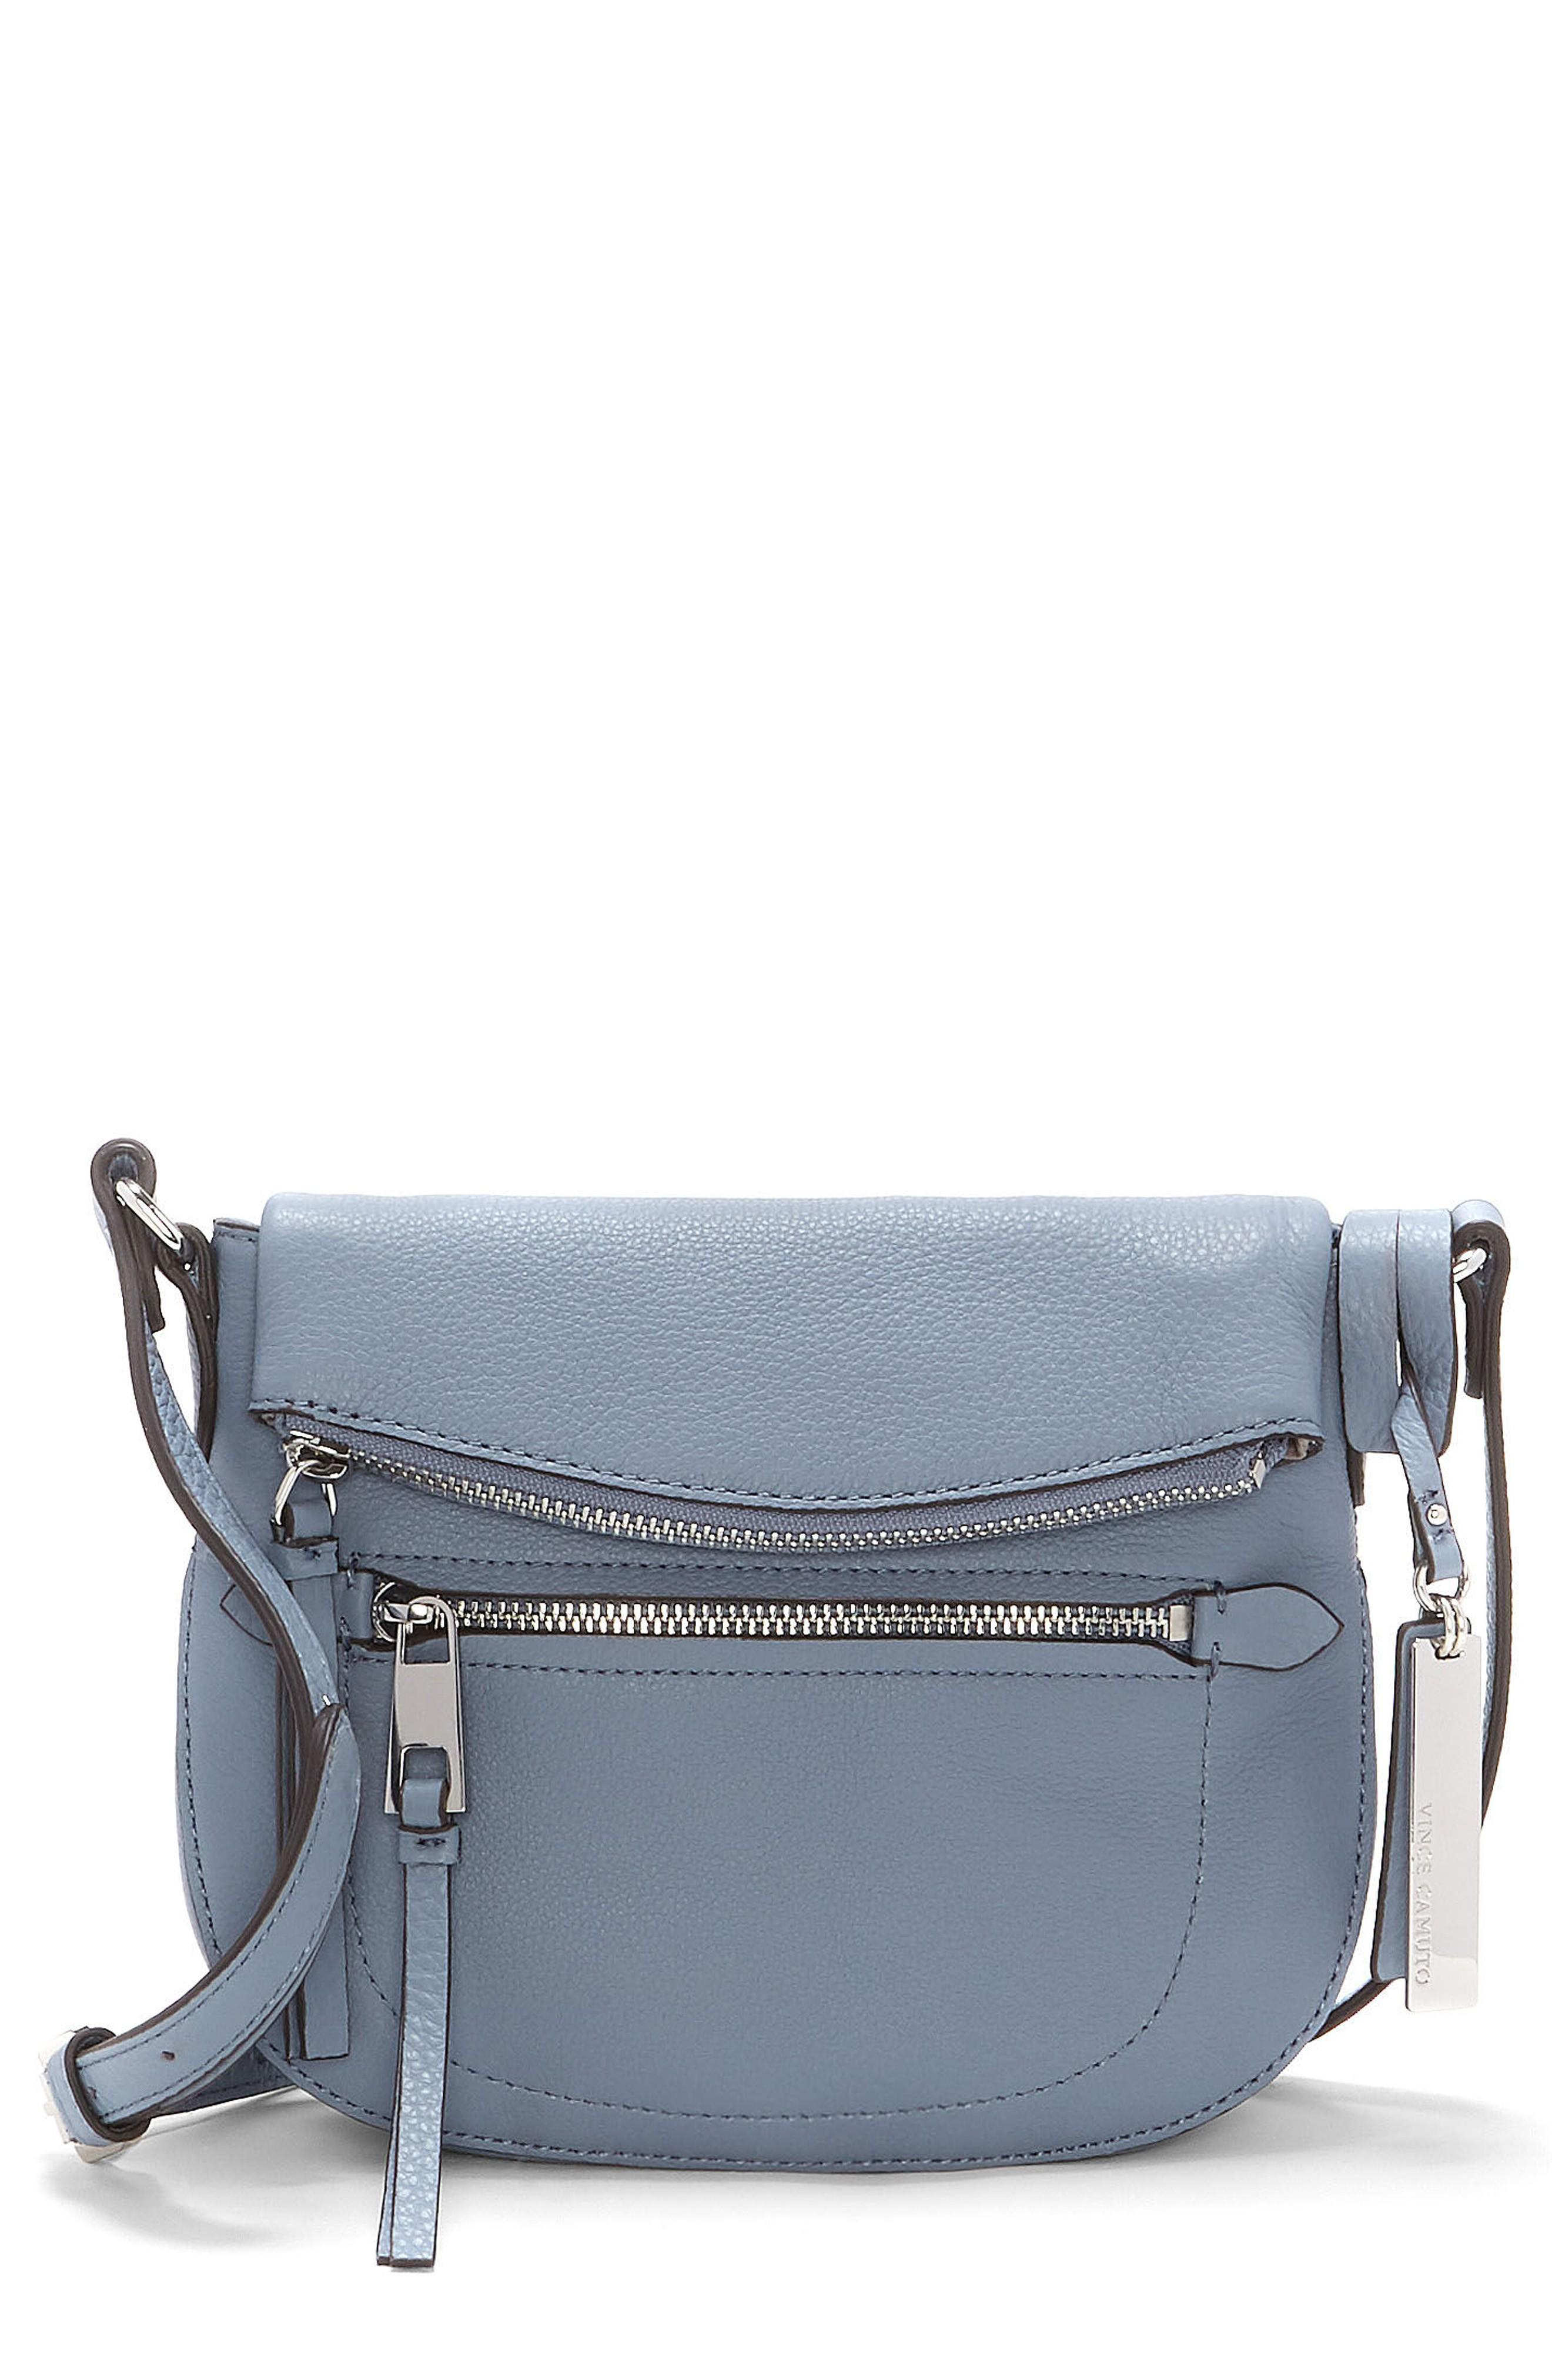 Vince Camuto Tala Small Leather Crossbody Bag - Blue In Serenity Blue